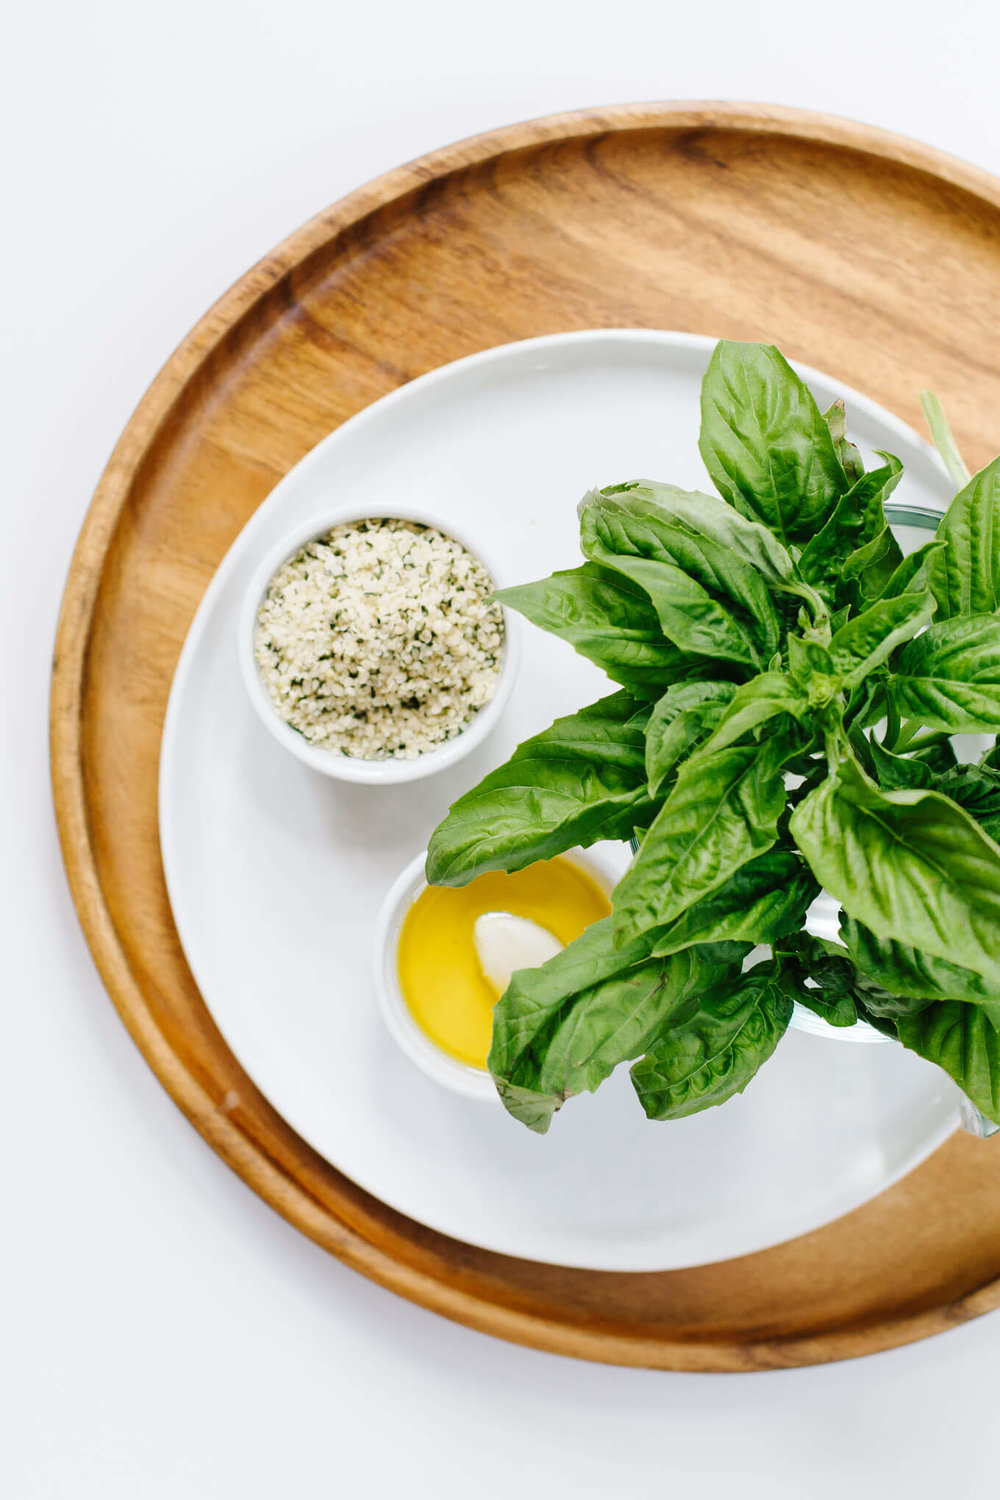 Vegan-Hemp-Seed-Basil-Pesto-2-of-6-1.jpg